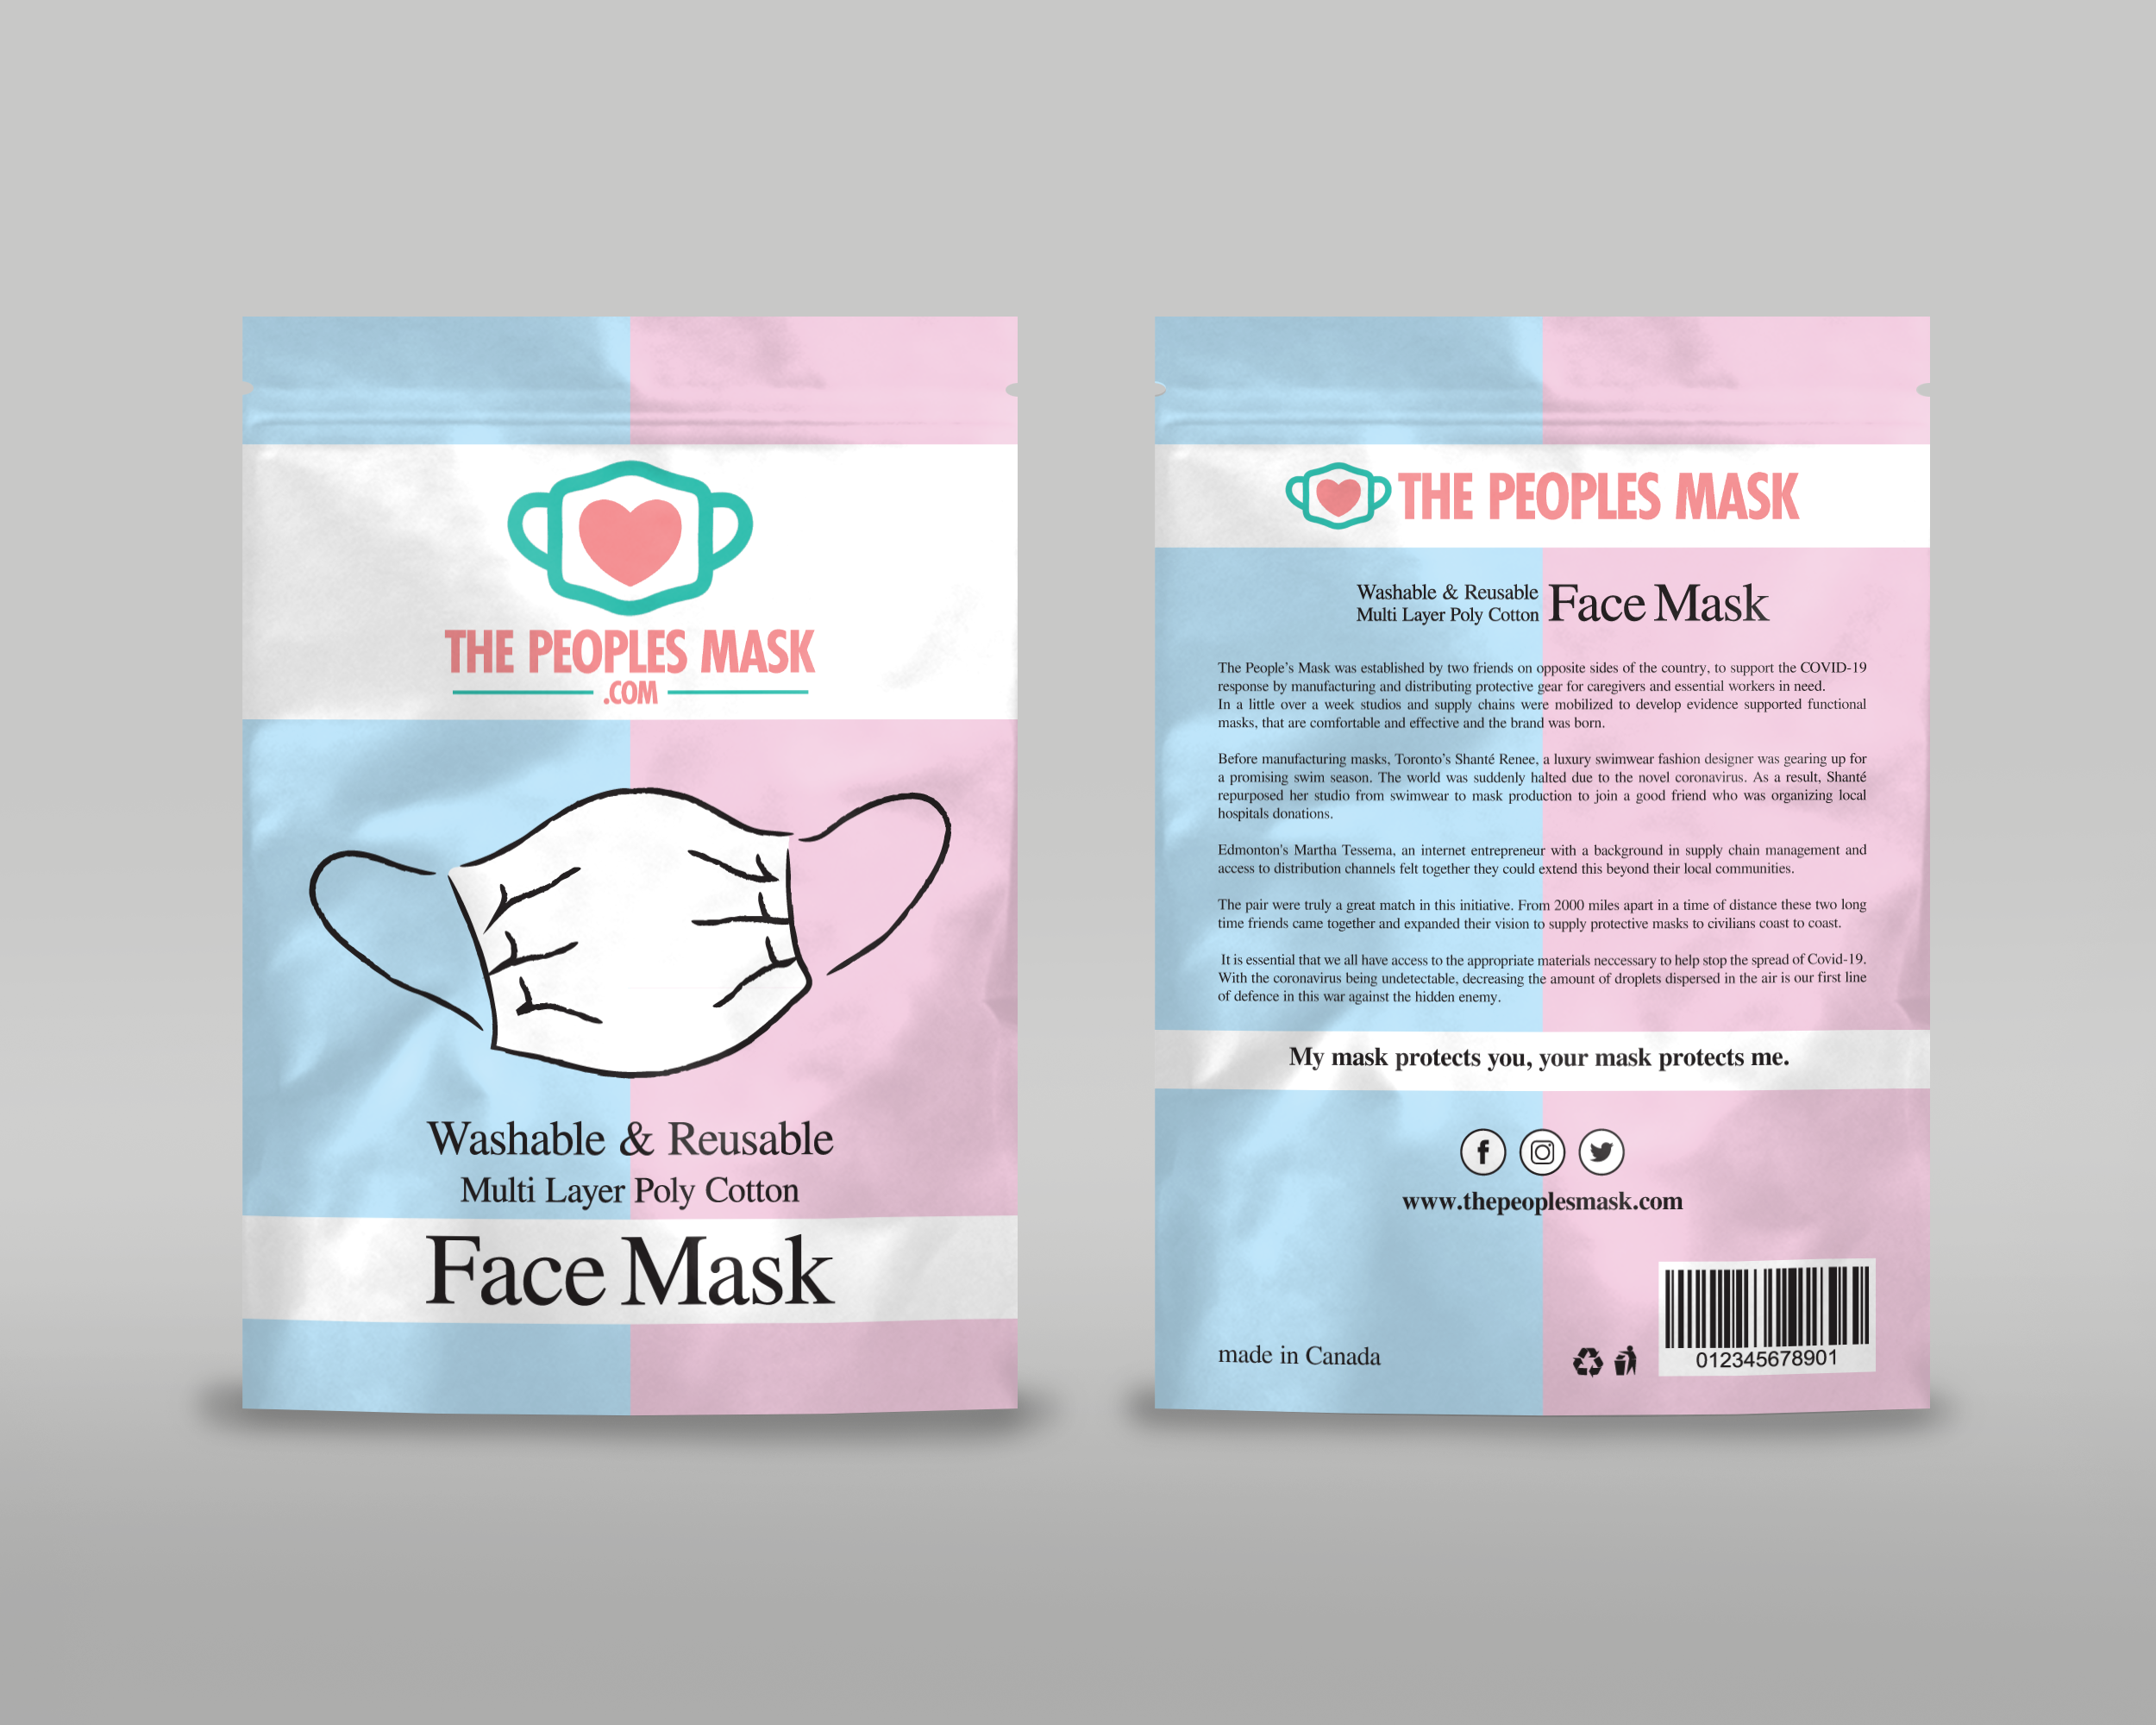 Bold Playful Fashion Packaging Design For The Peoples Mask Corp By Vpt Creations Design 24291503